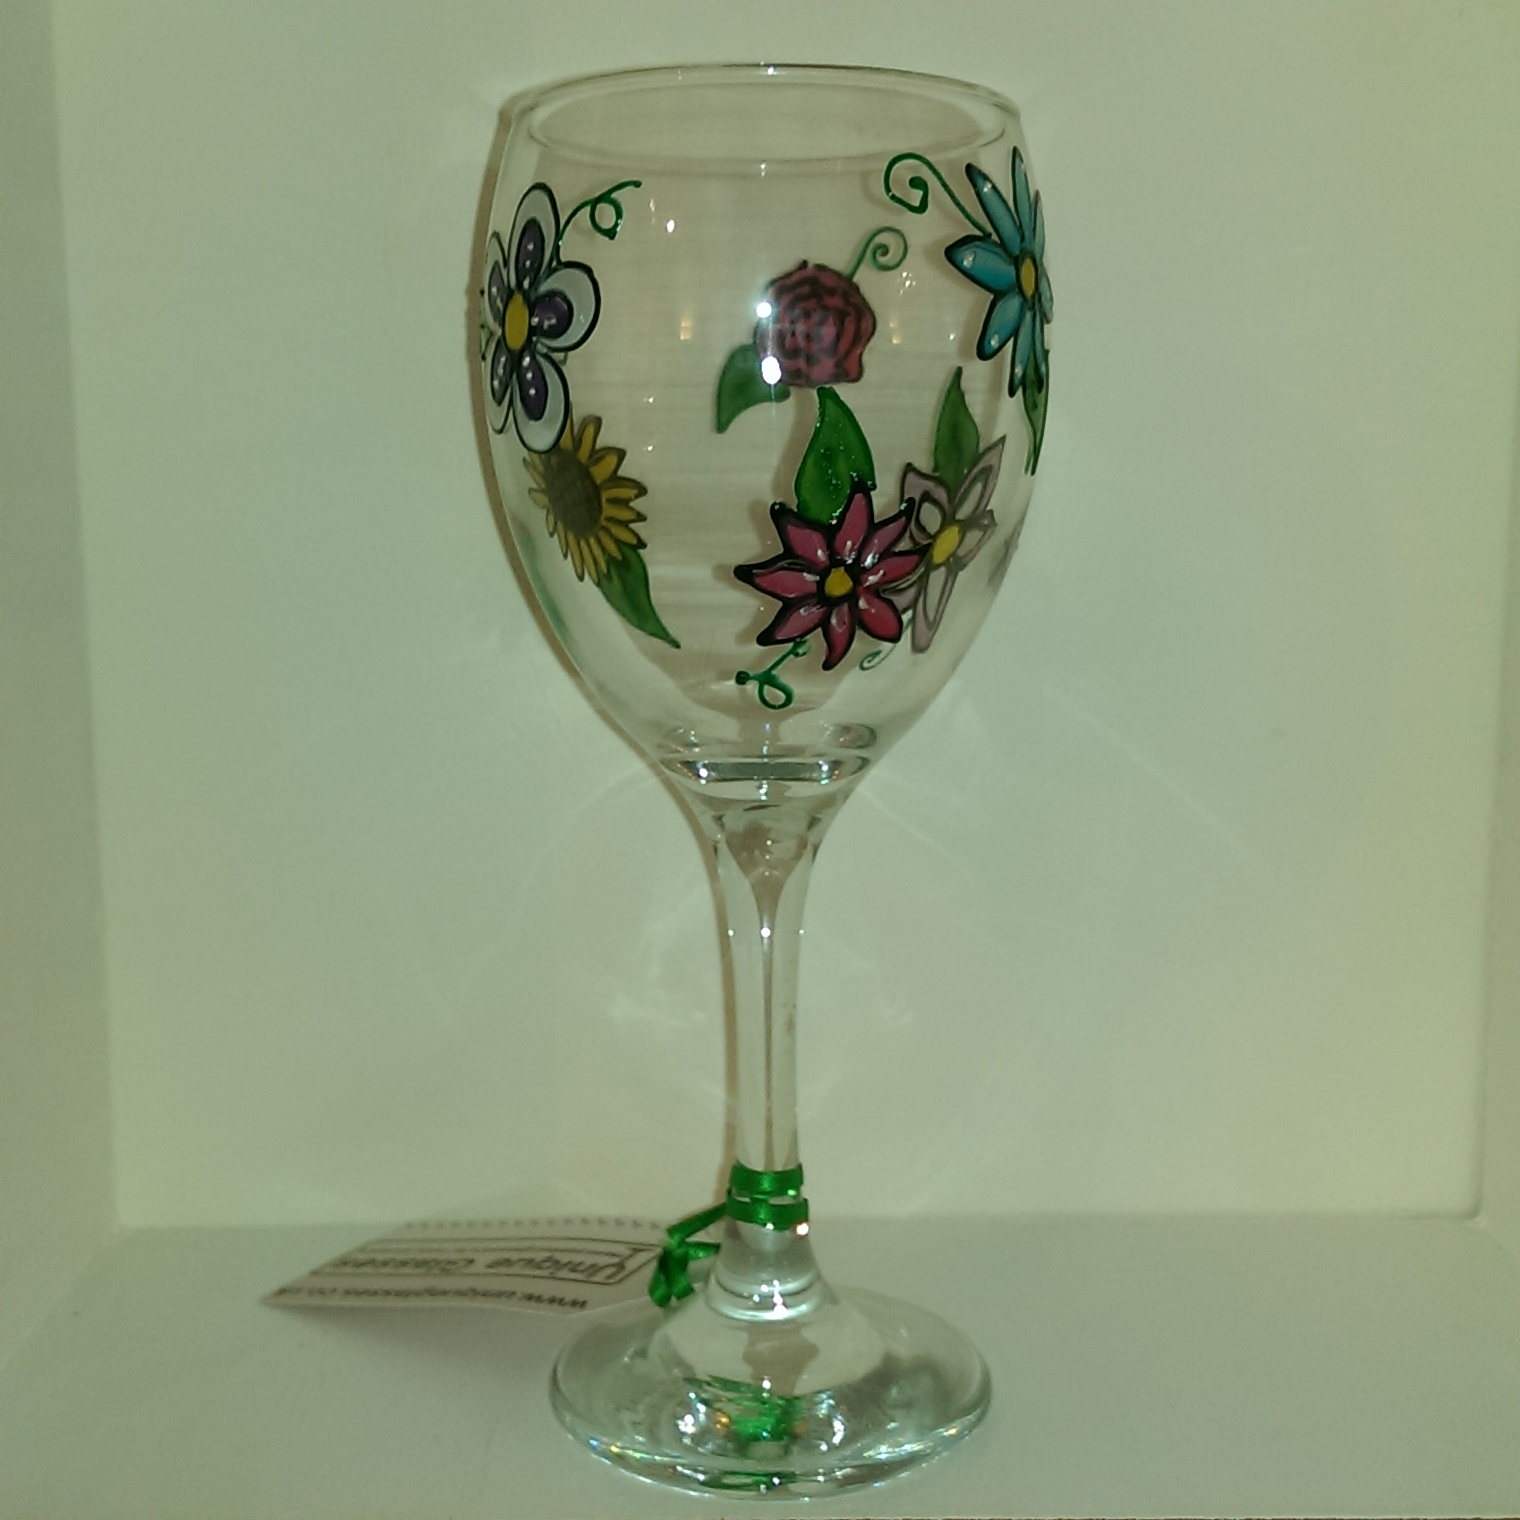 Already Painted Classic Flower Wine Glass Unique Glasses